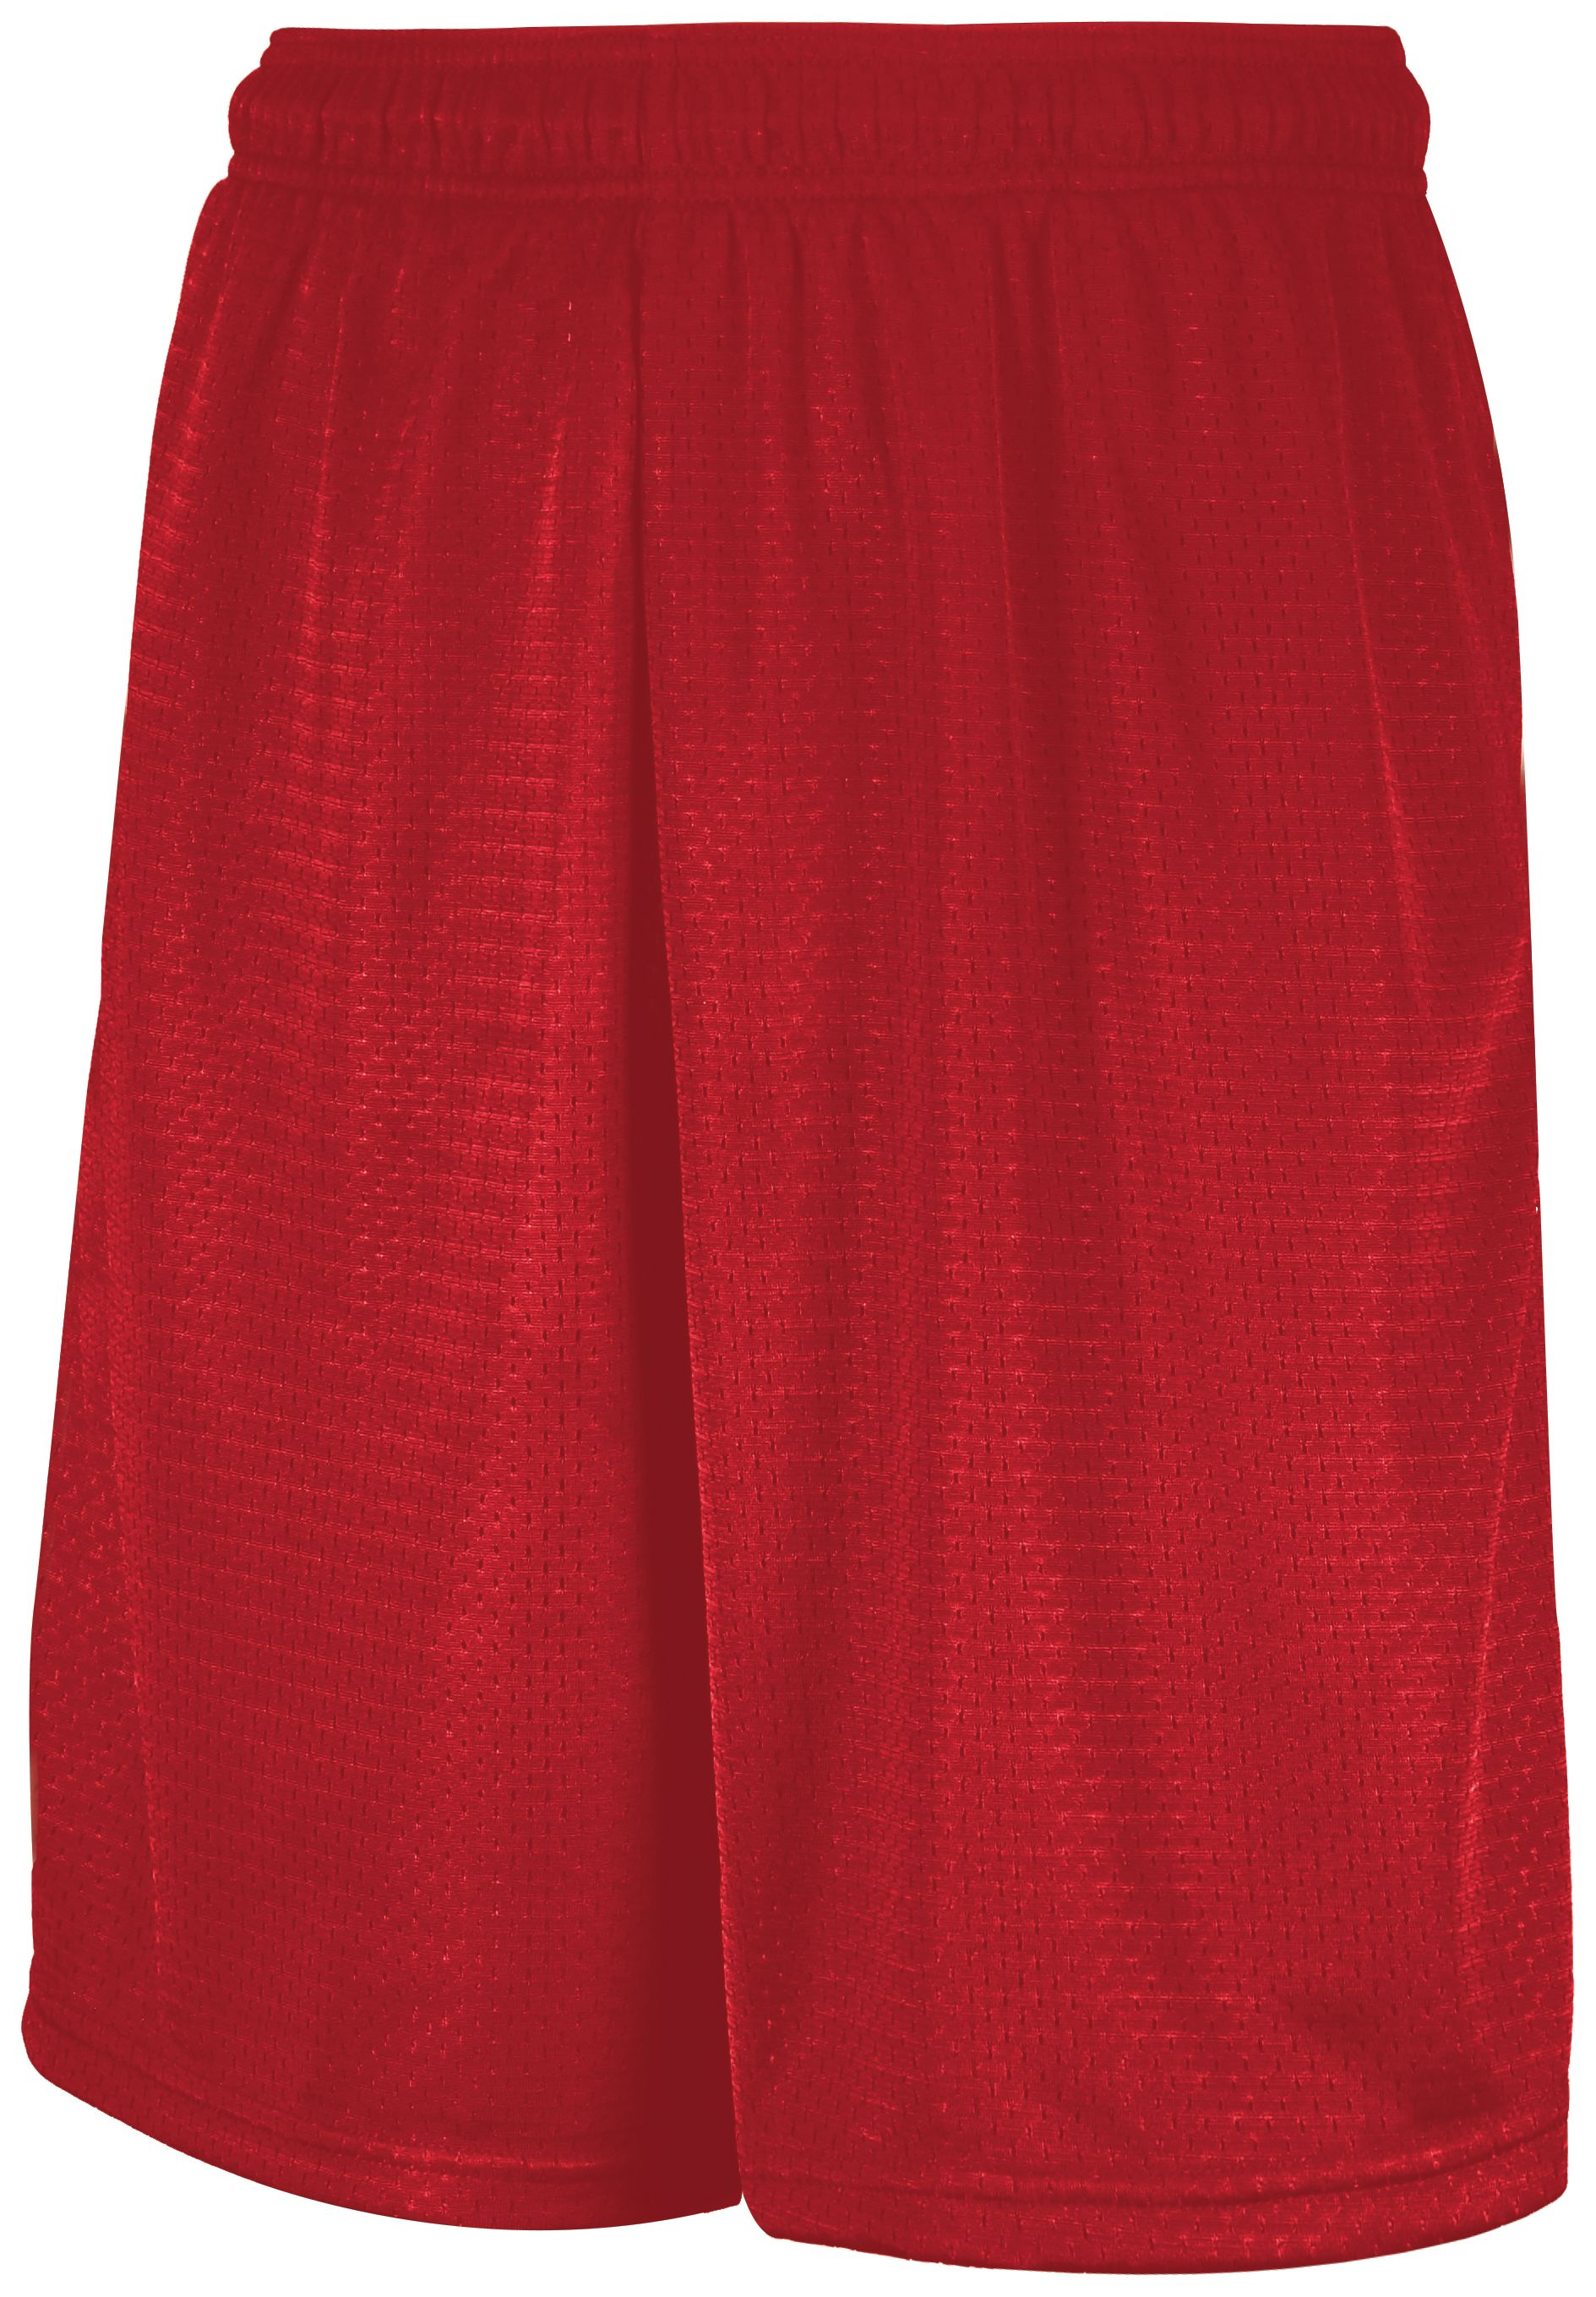 Mesh Shorts With Pockets - True Red